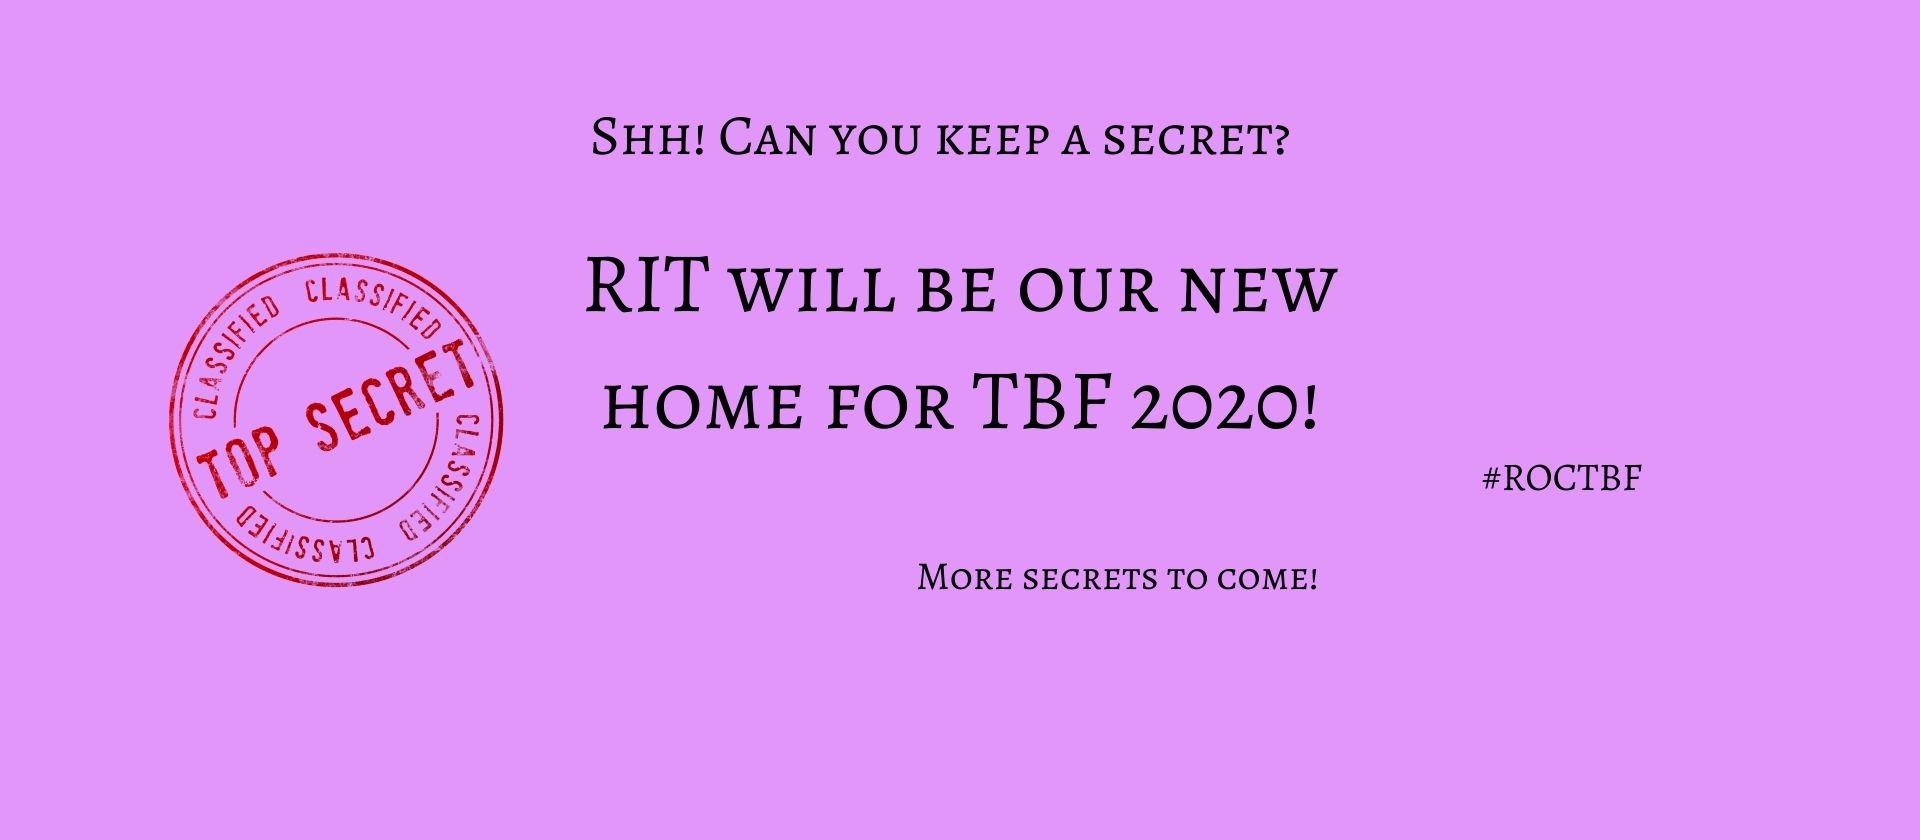 TBF is coming back in 2020 at our new location at RIT!